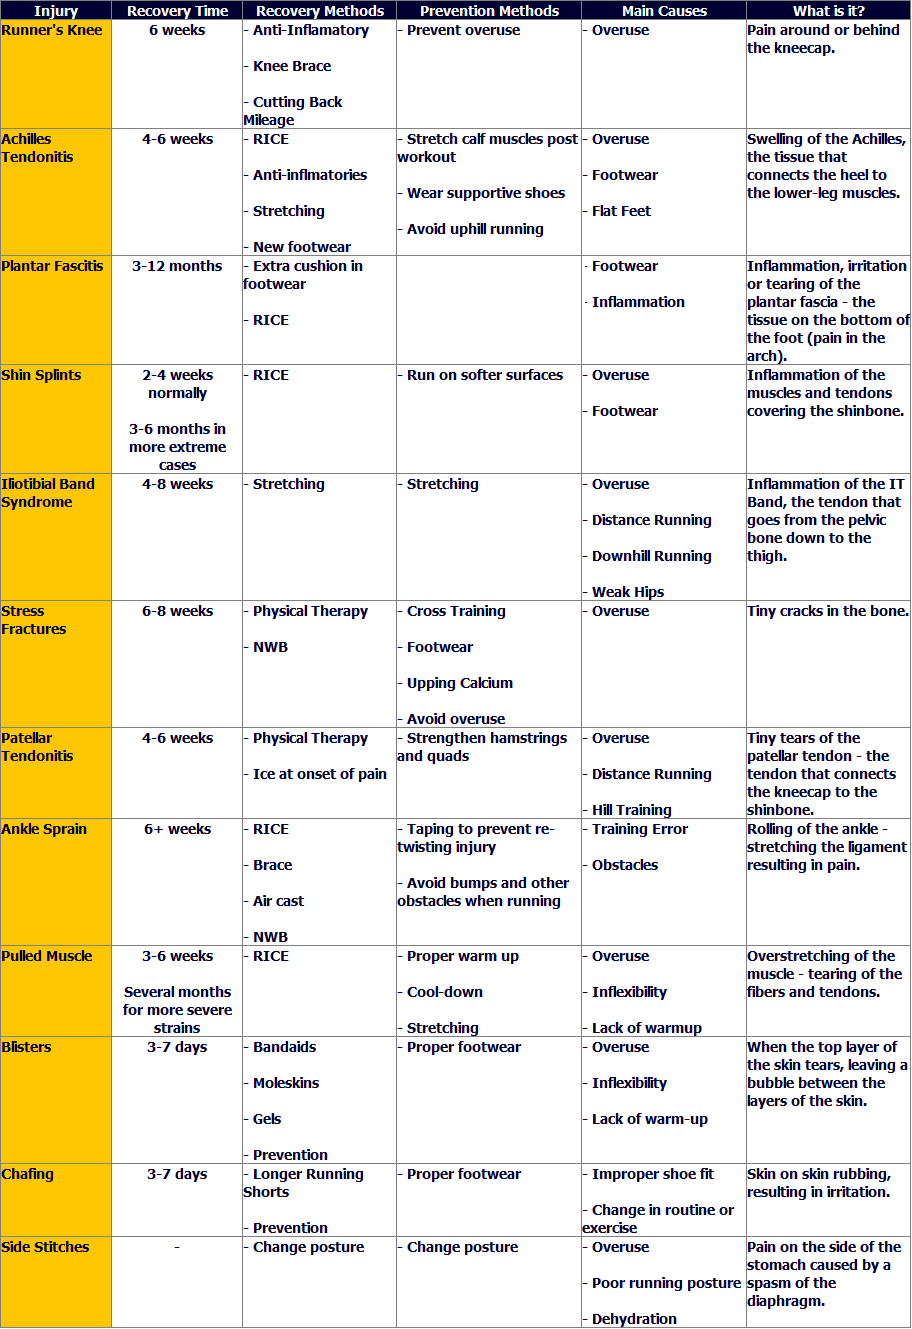 Table of running injuries with recovery and prevention methods